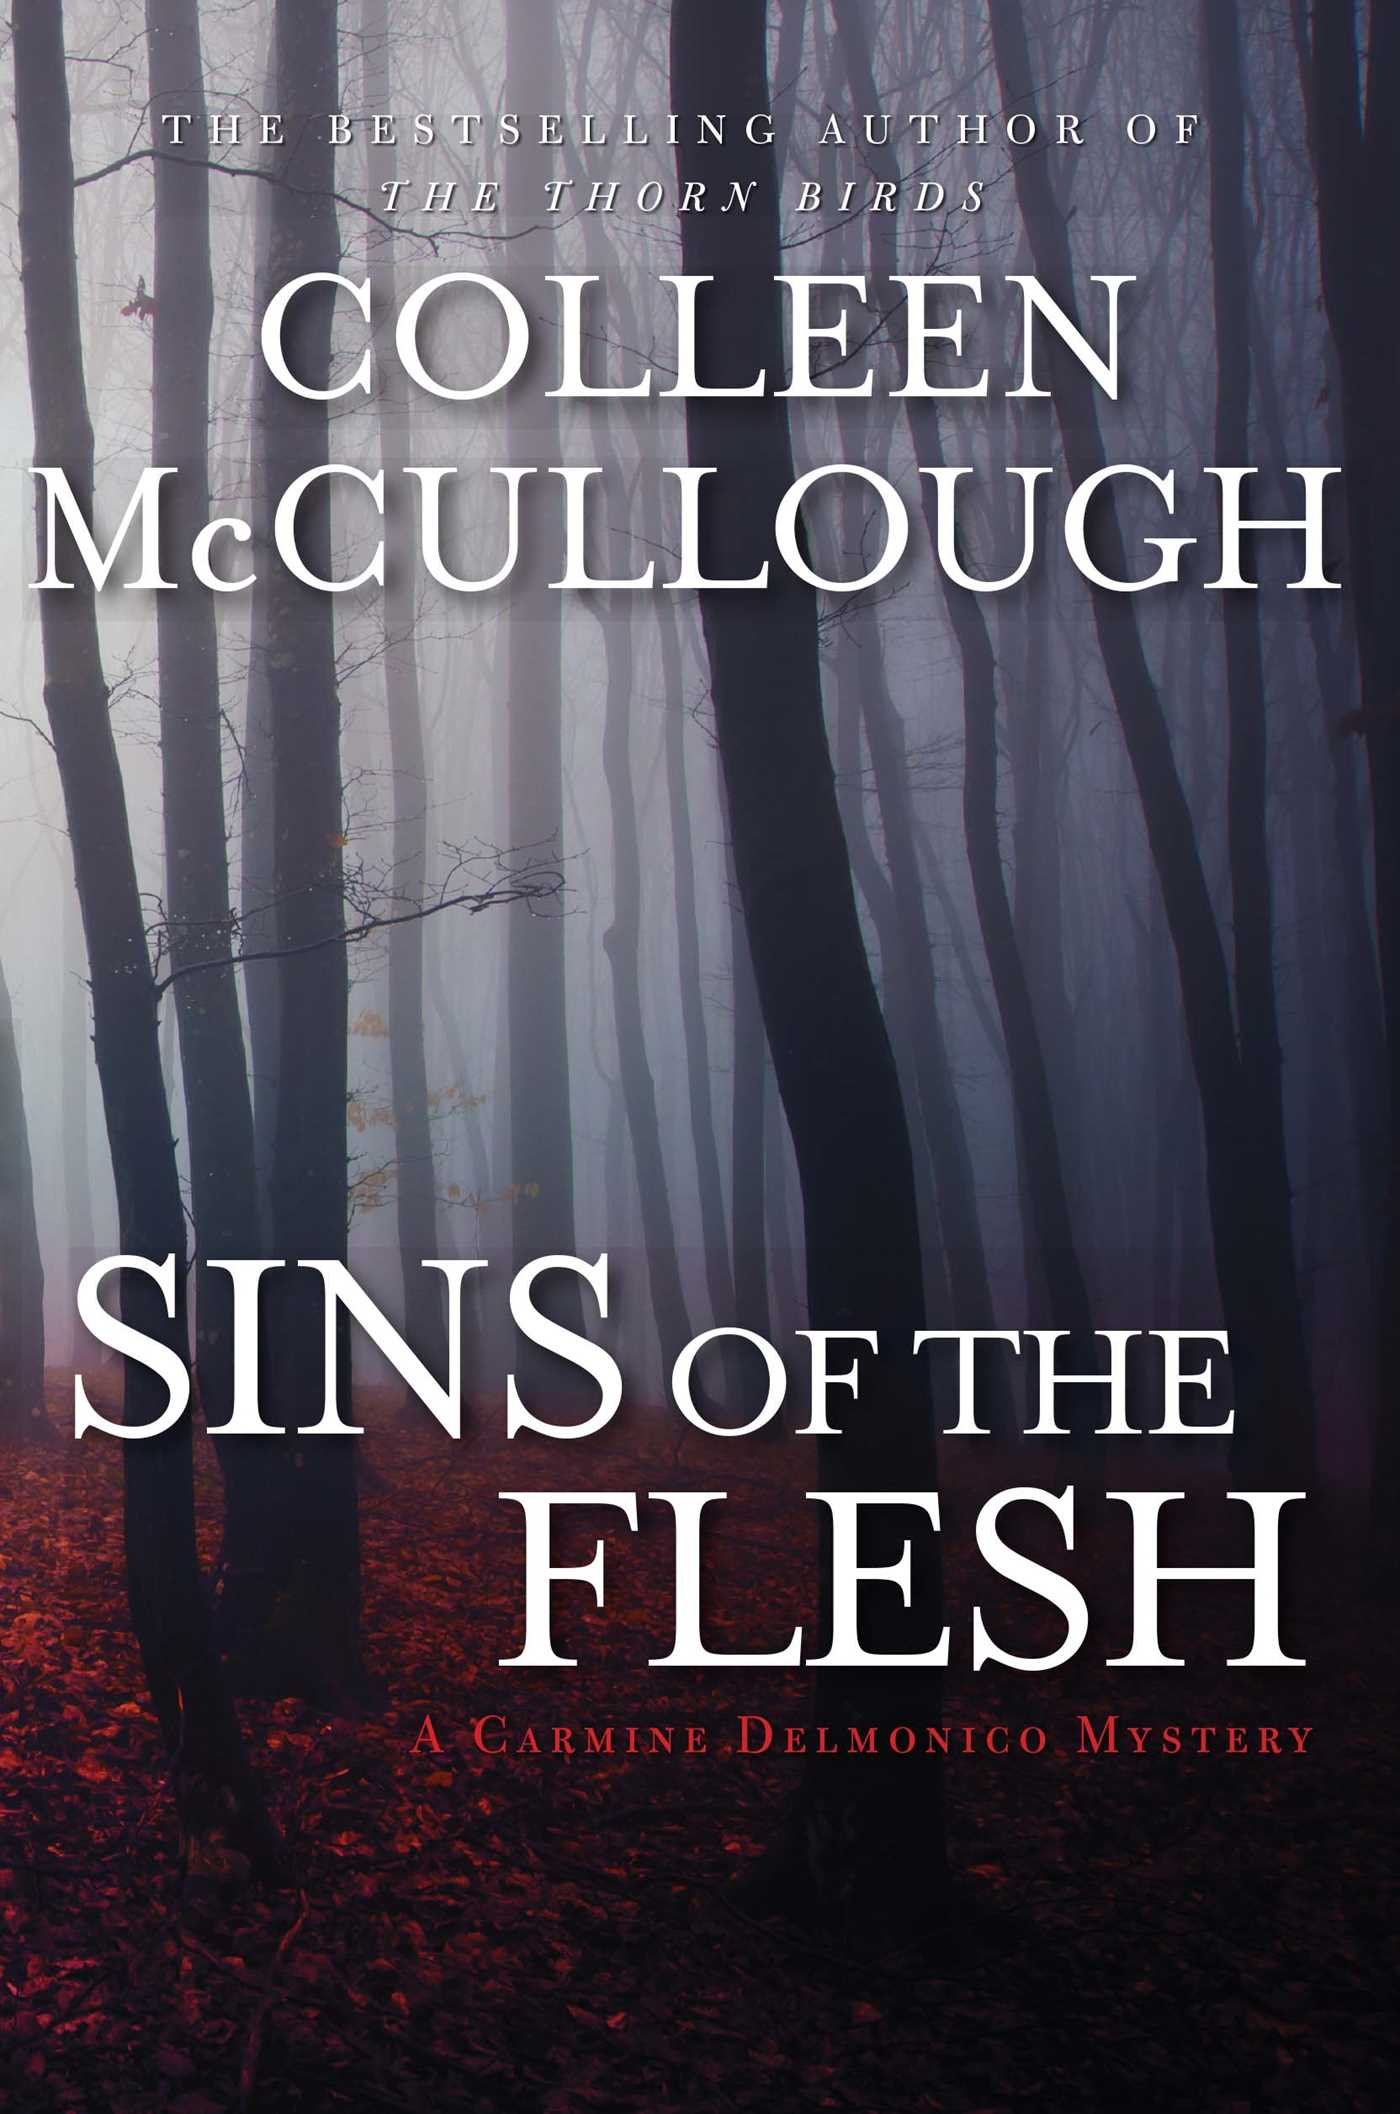 Sins of the flesh book by colleen mccullough official publisher book cover image jpg sins of the flesh fandeluxe Images